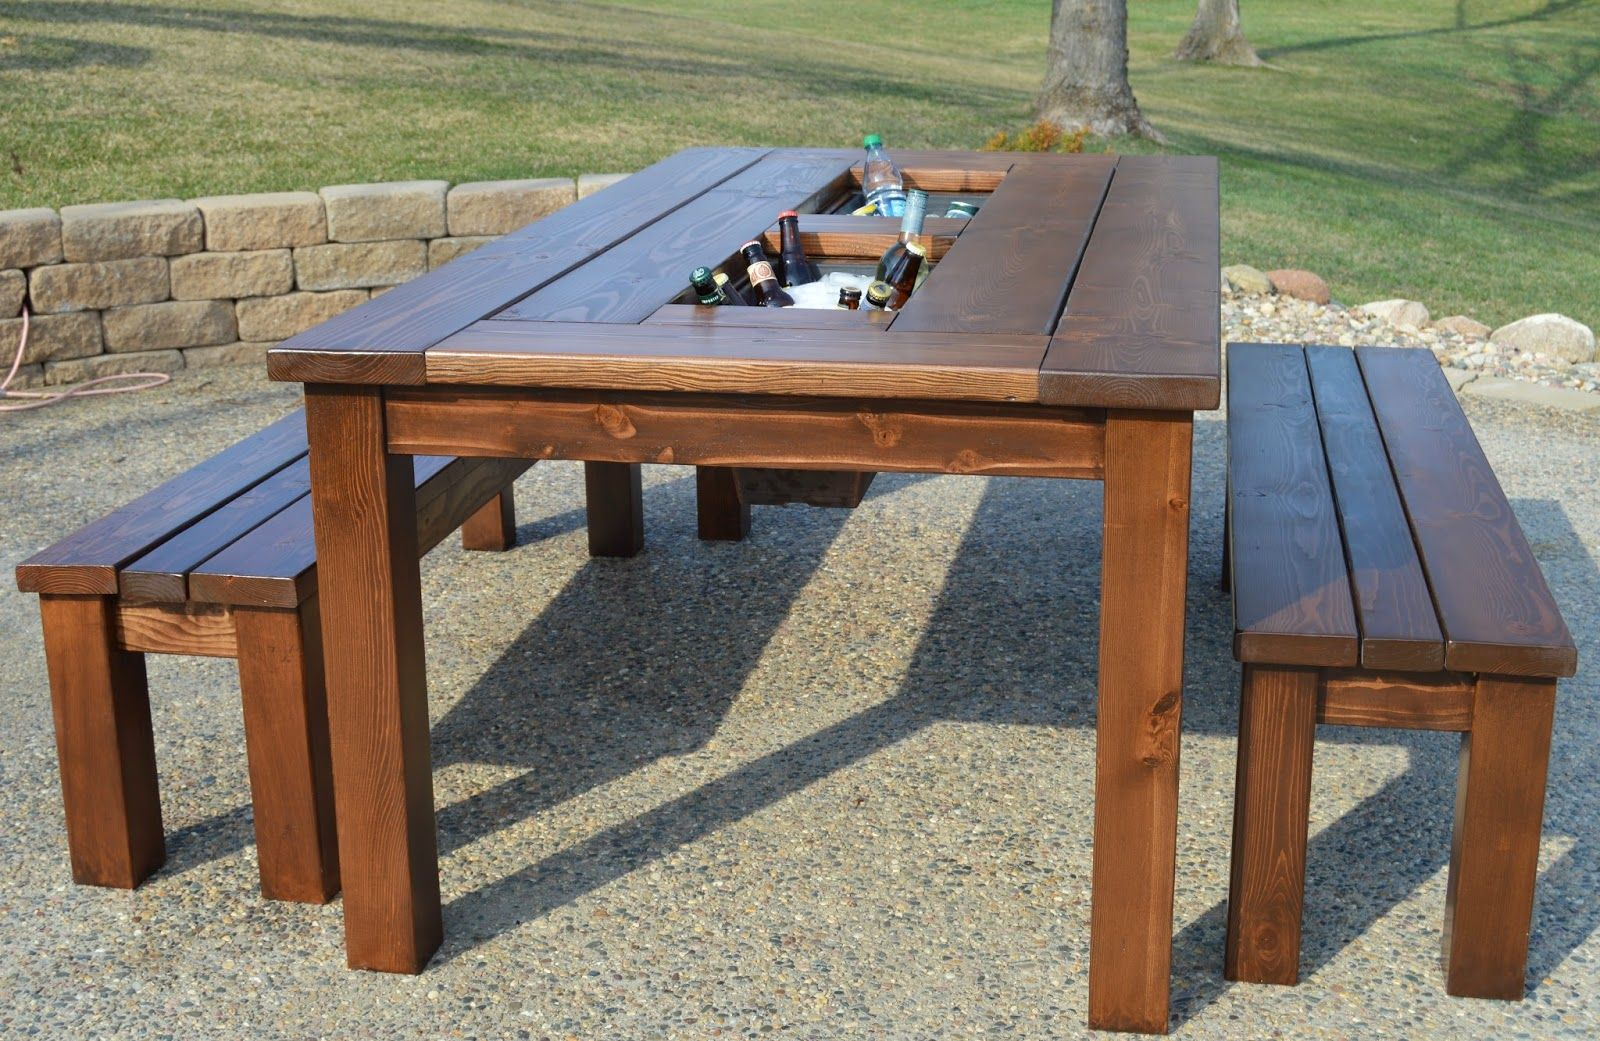 Outdoor wood table plans - Can T Wait To Make This With A Picnic Table Benches Pinterest 2x4 Bench Picnic Tables And Picnics